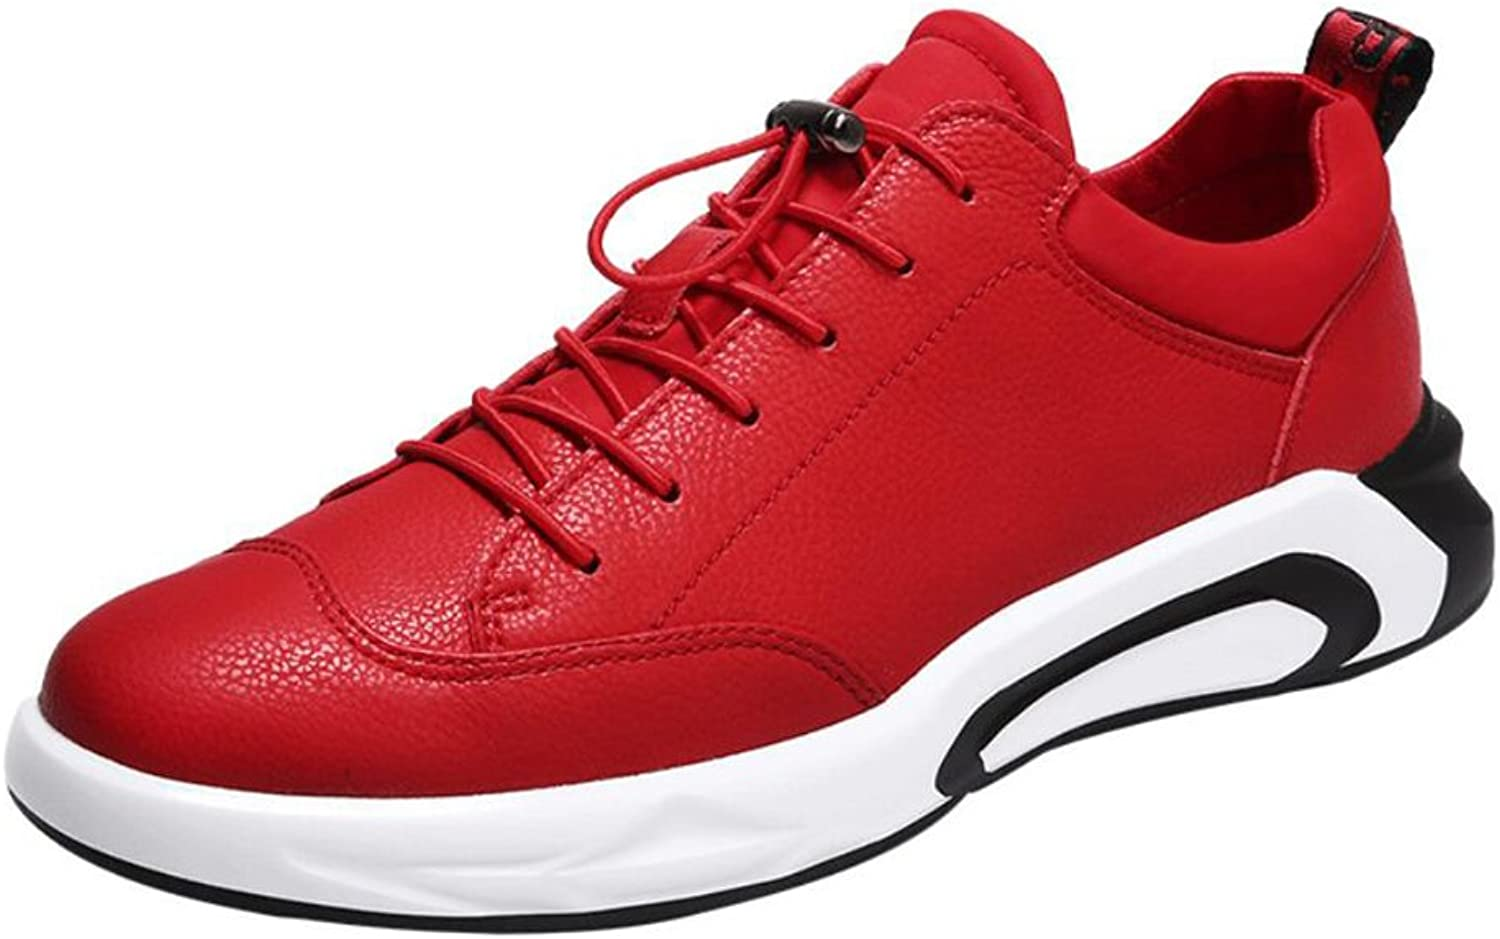 Men's Athletic shoes,Leather,Spring Fall,Comfort Low-Top Sneakers,Breathable Running shoes,Lightweight Walking shoes,Non-Slip Travel,Fitness shoes (color   B, Size   44)